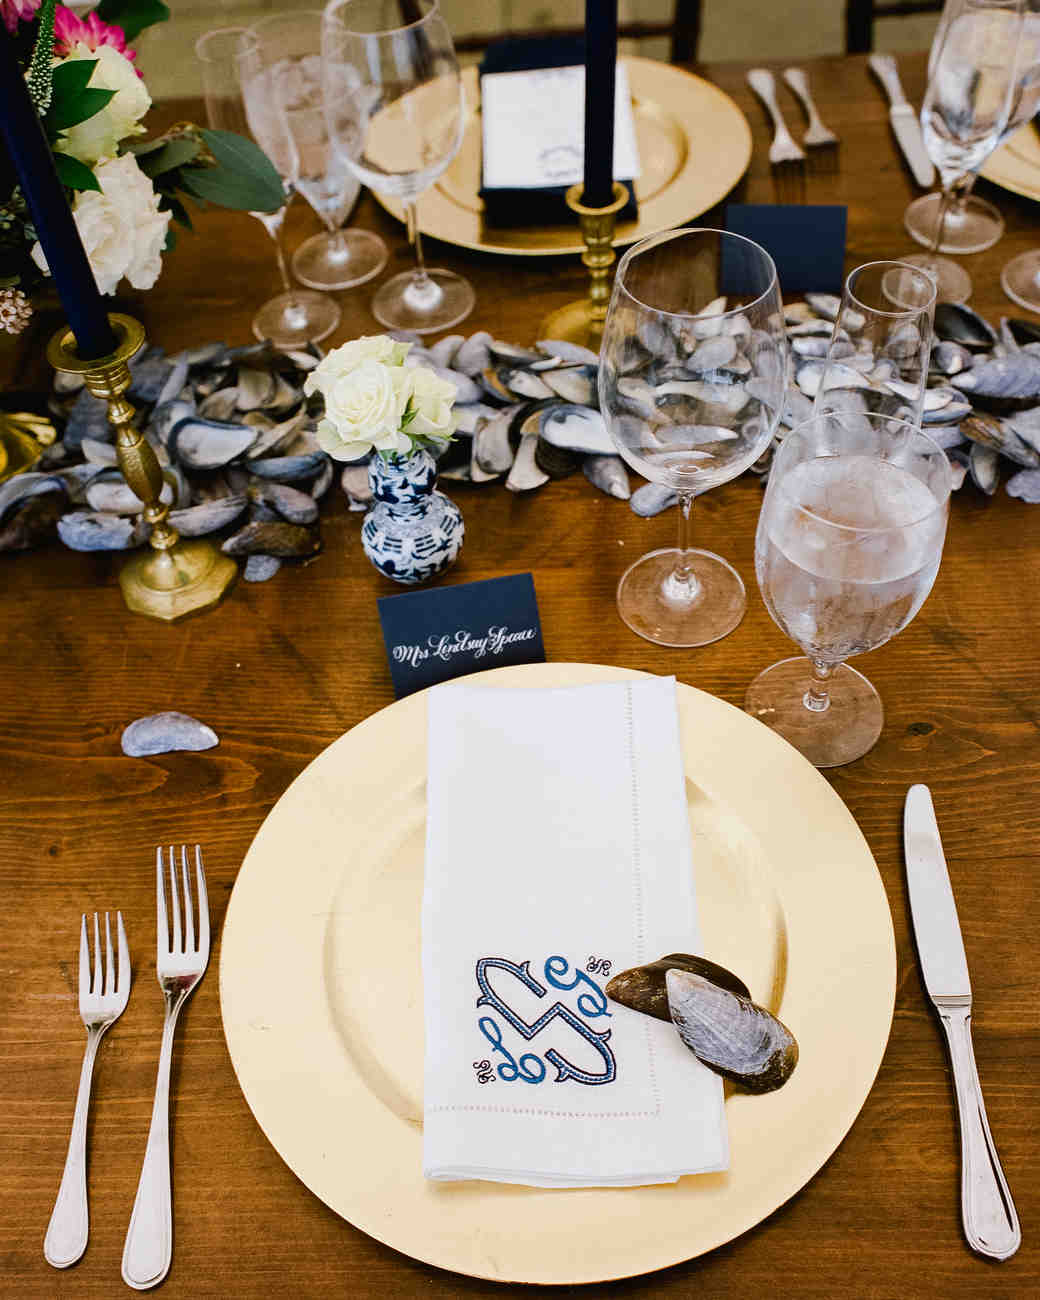 lindsay-garrett-wedding-placesetting-0758-s111850-0415.jpg